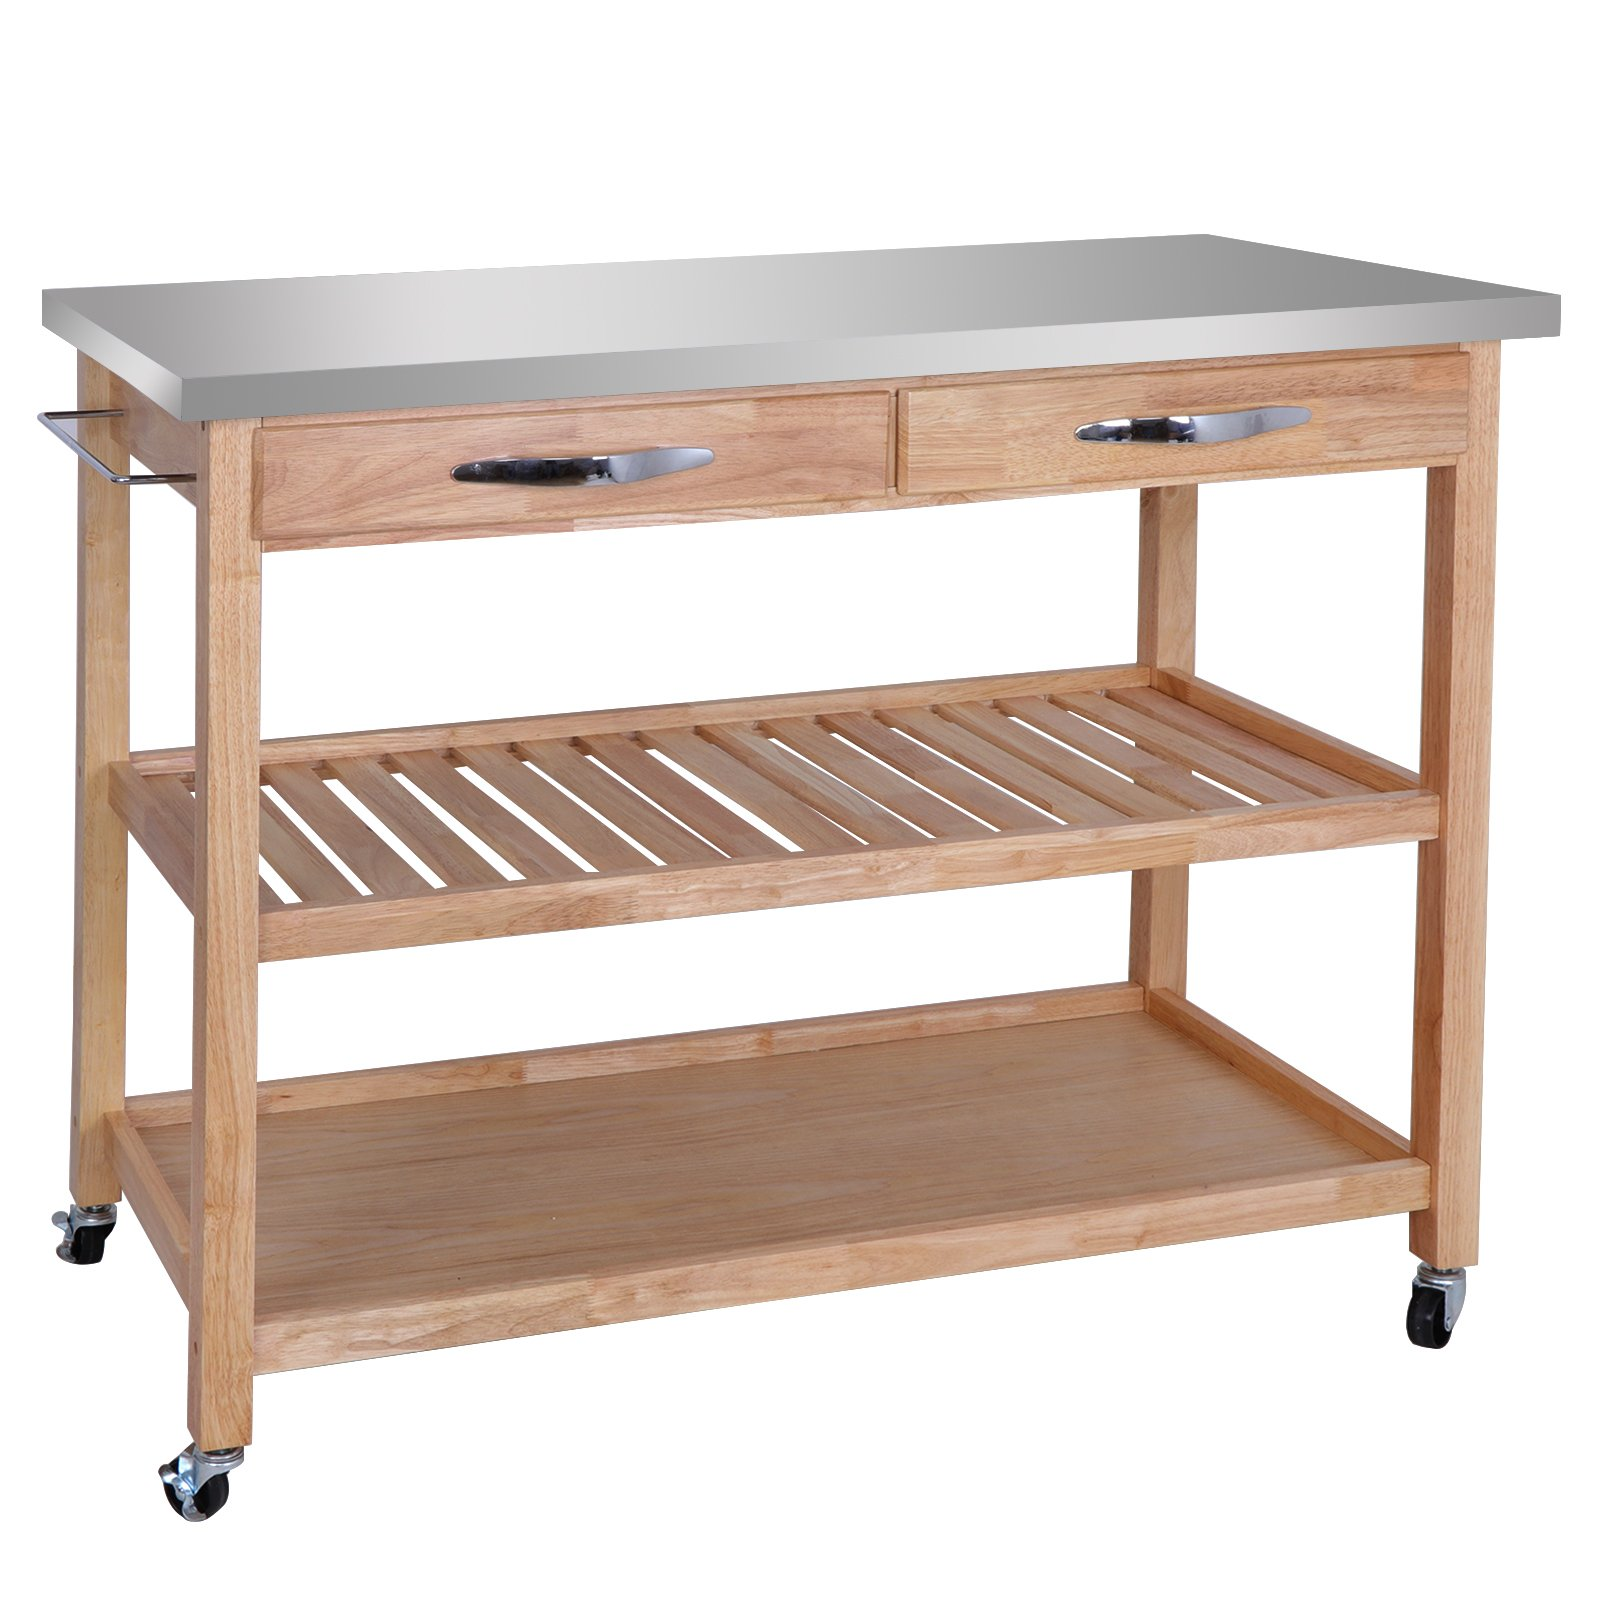 ZenStyle 3-Tier Rolling Kitchen Island Utility Wood Serving Cart Stainless Steel Countertop Kitchen Storage Cart w/Shelves, Drawers, Towel Rack by ZenStyle